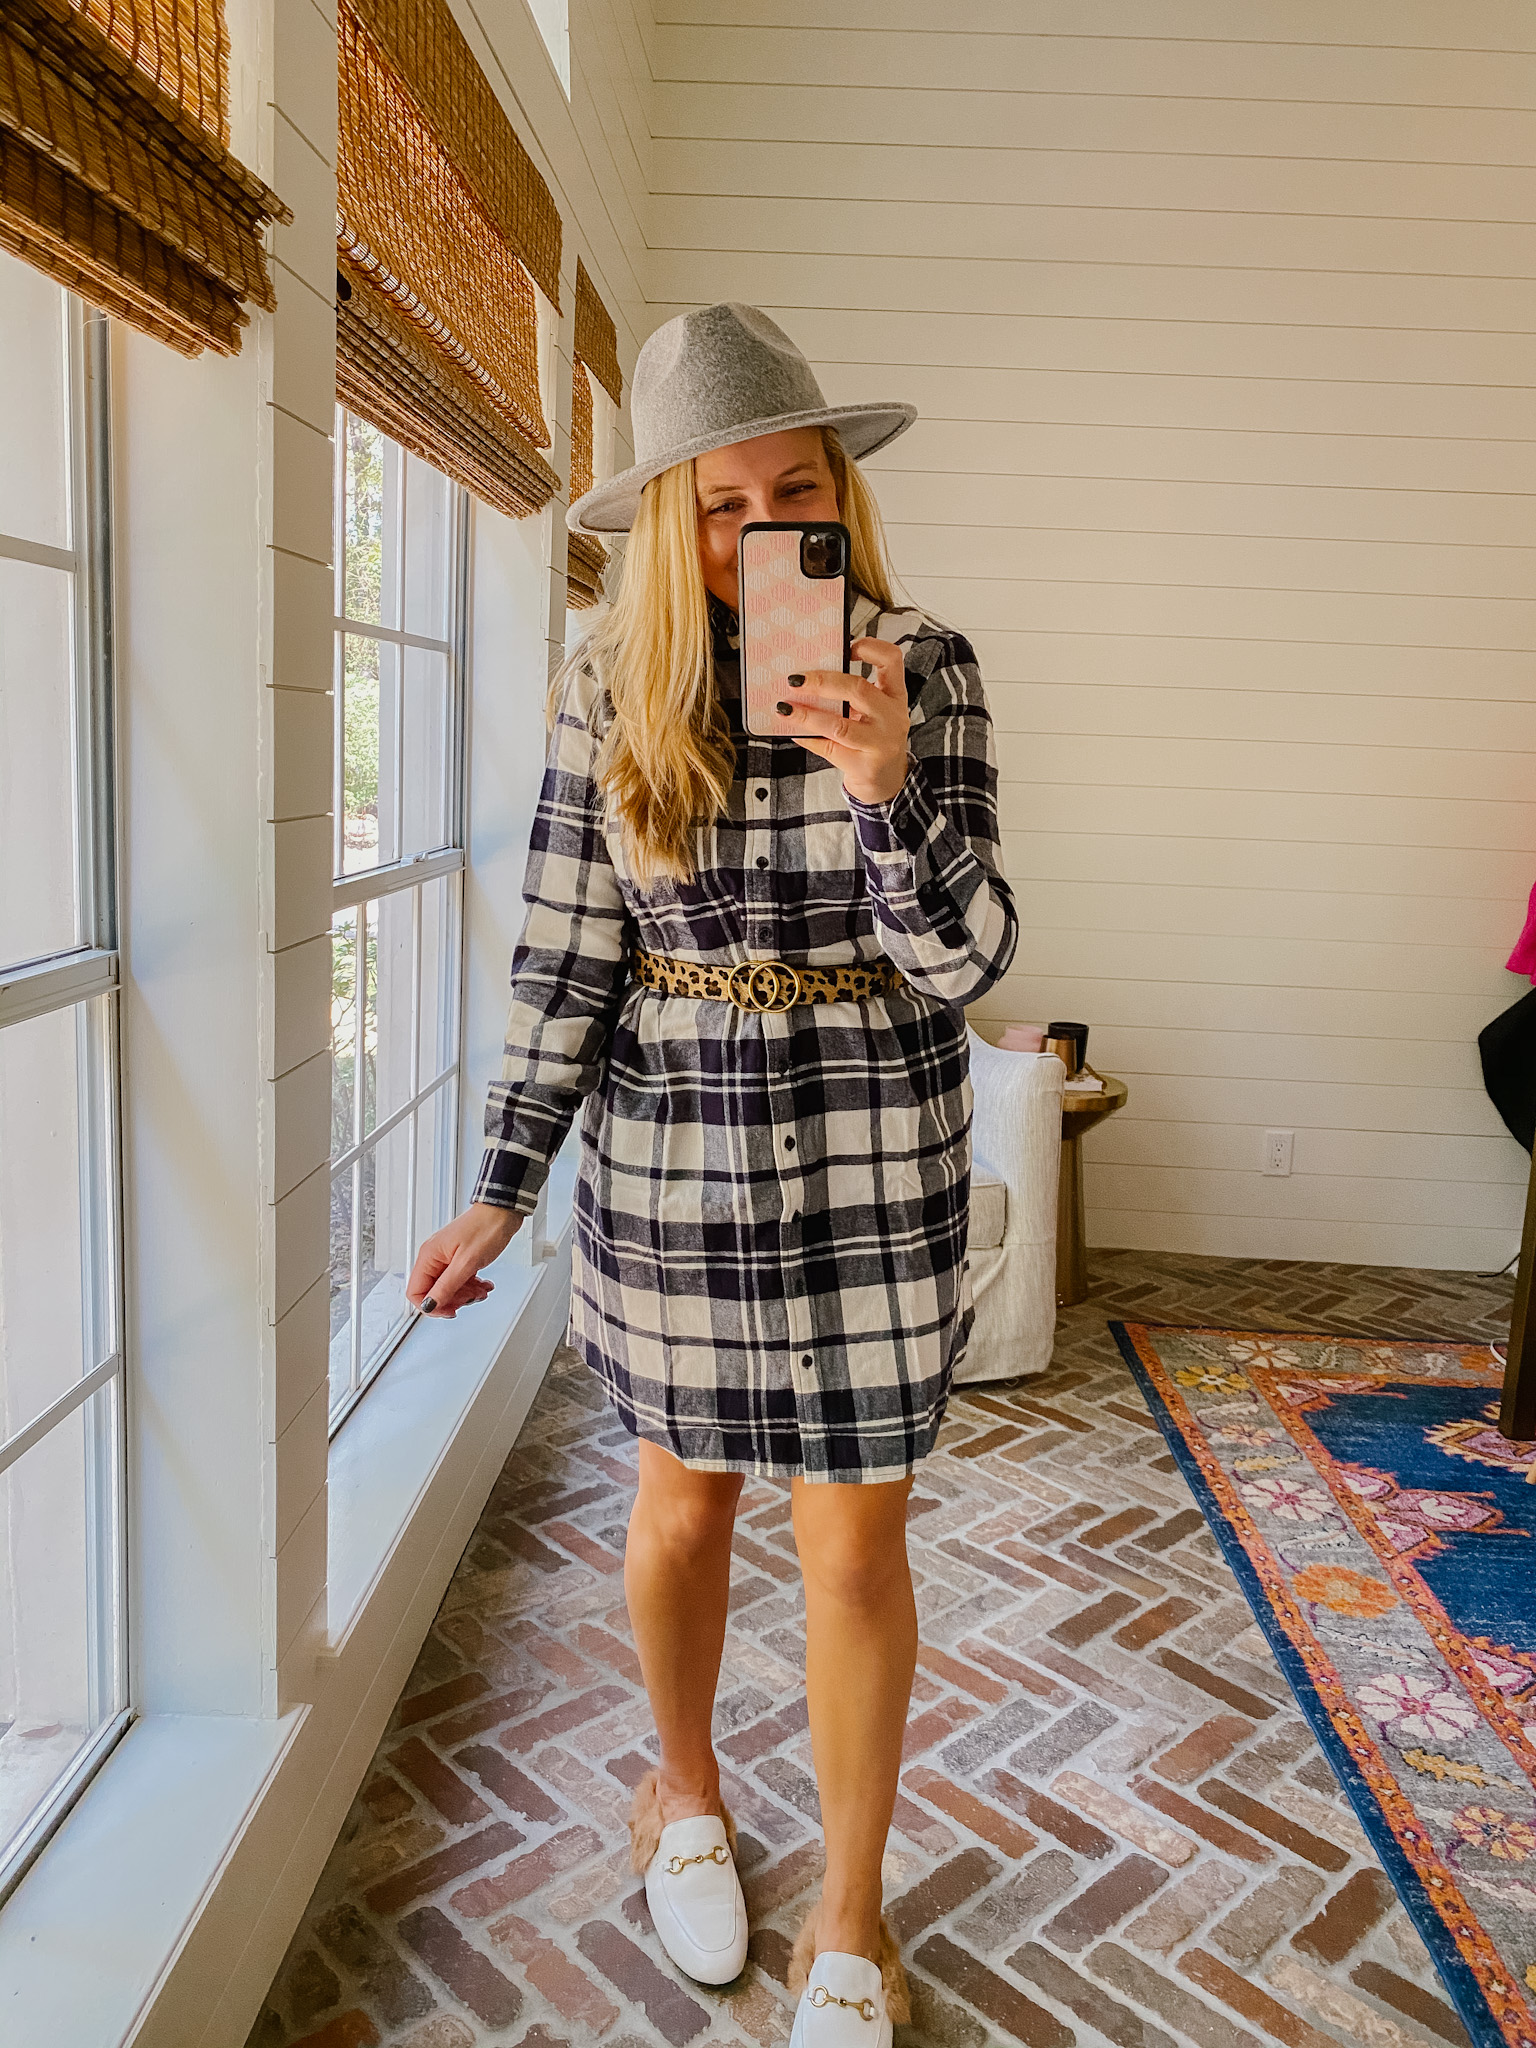 Prime Day by popular Houston fashion blog, Fancy Ashley: image of a woman wearing a Amazon plaid dress, felt hat, leopard print belt and white mules.